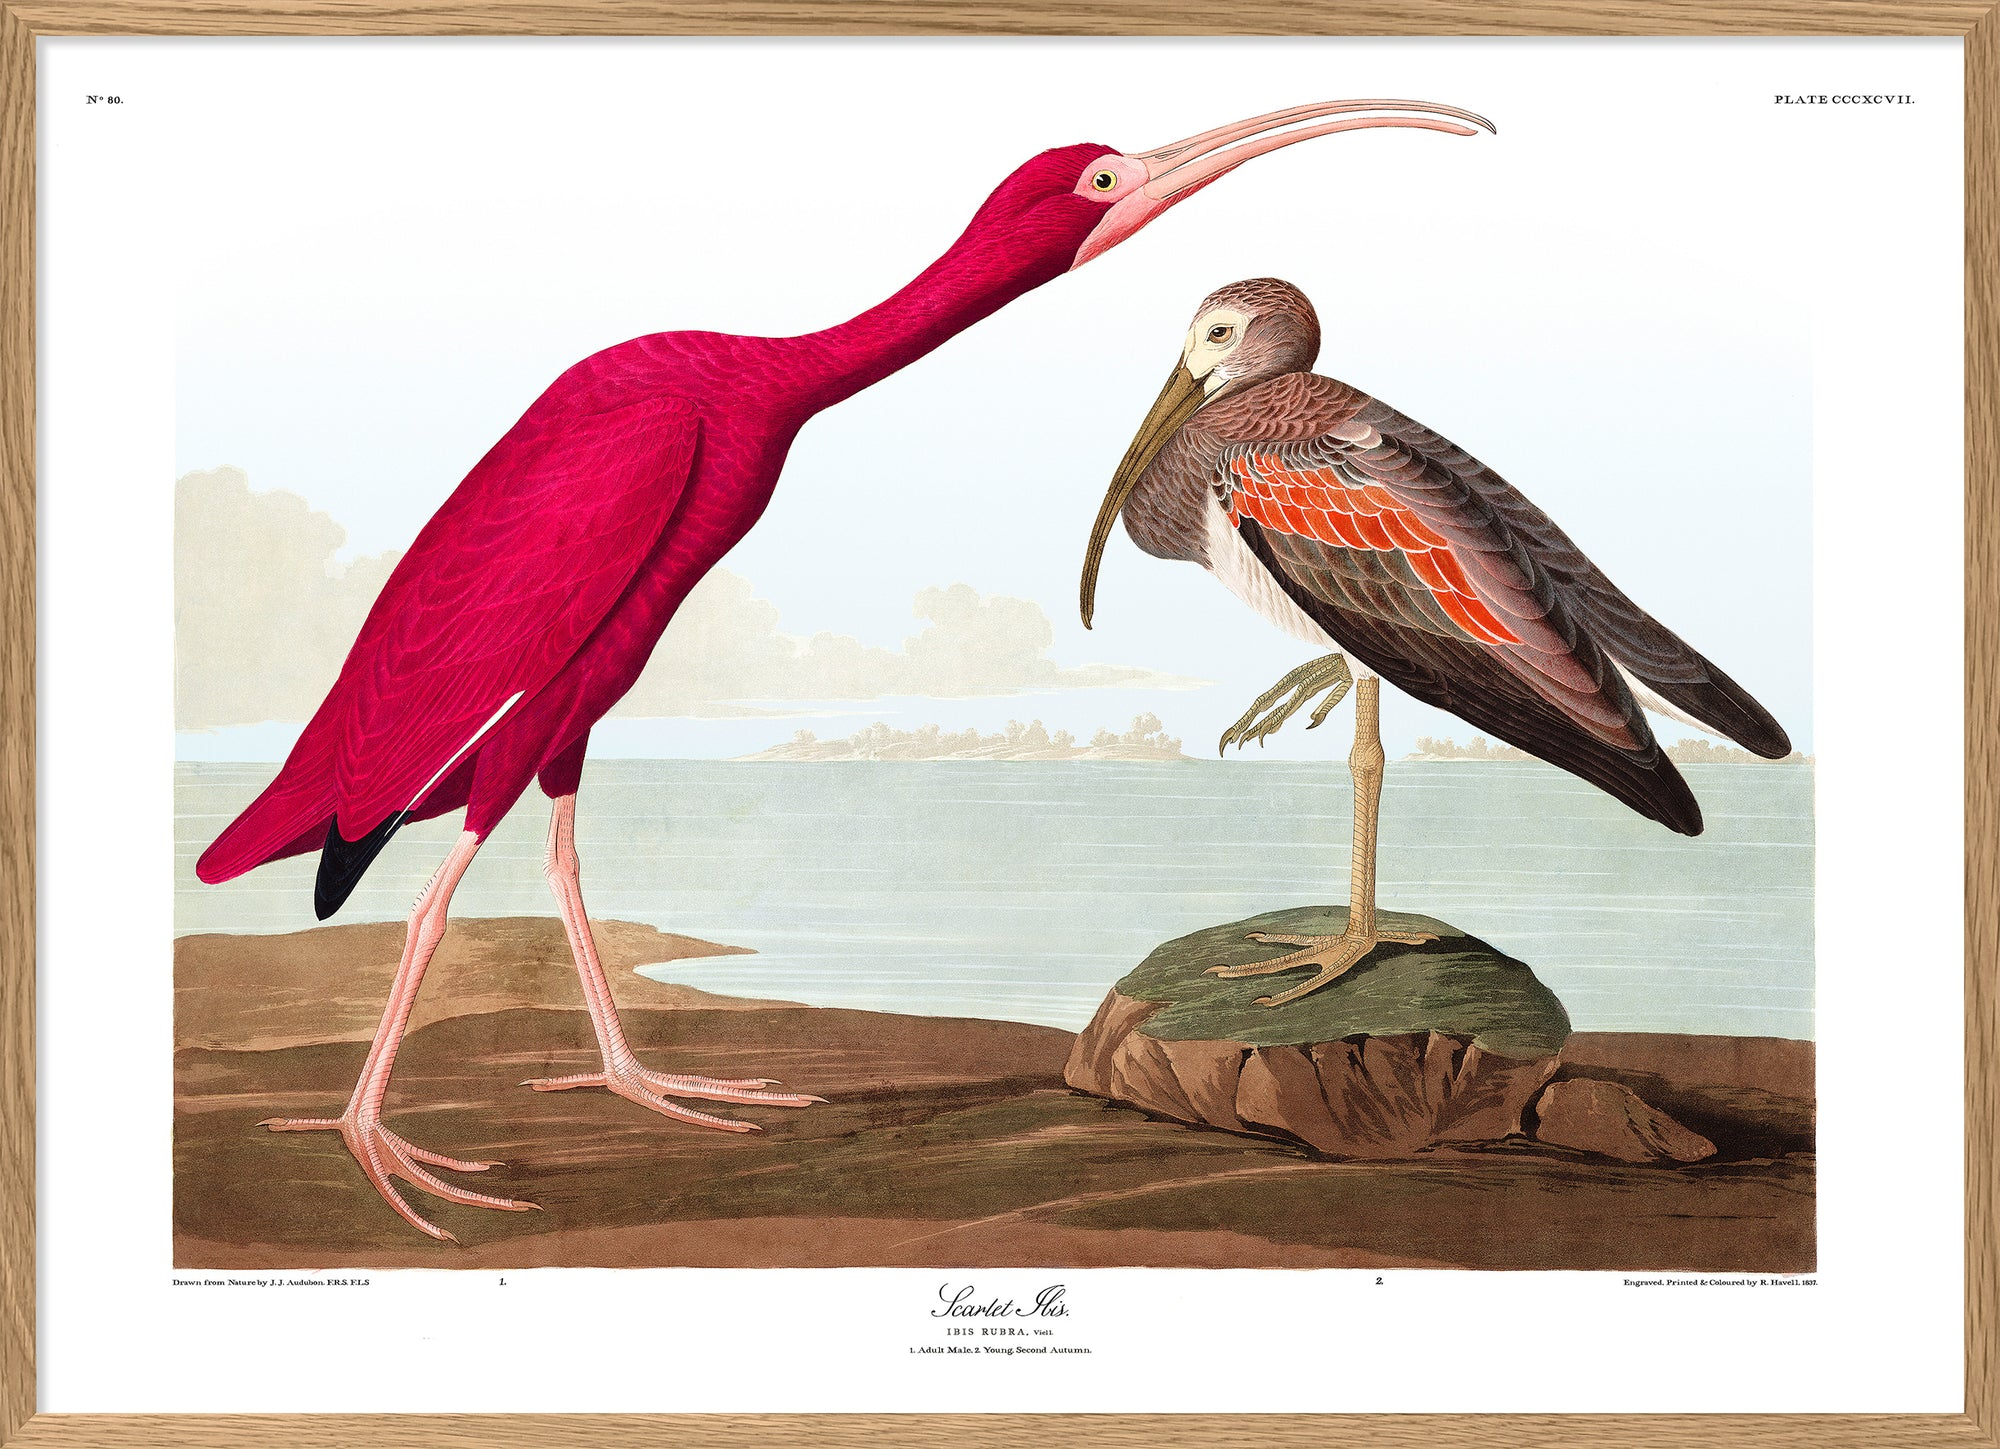 Audubon reproduction Scarlet Ibis pink bird poster print dybdahl birds of america collection